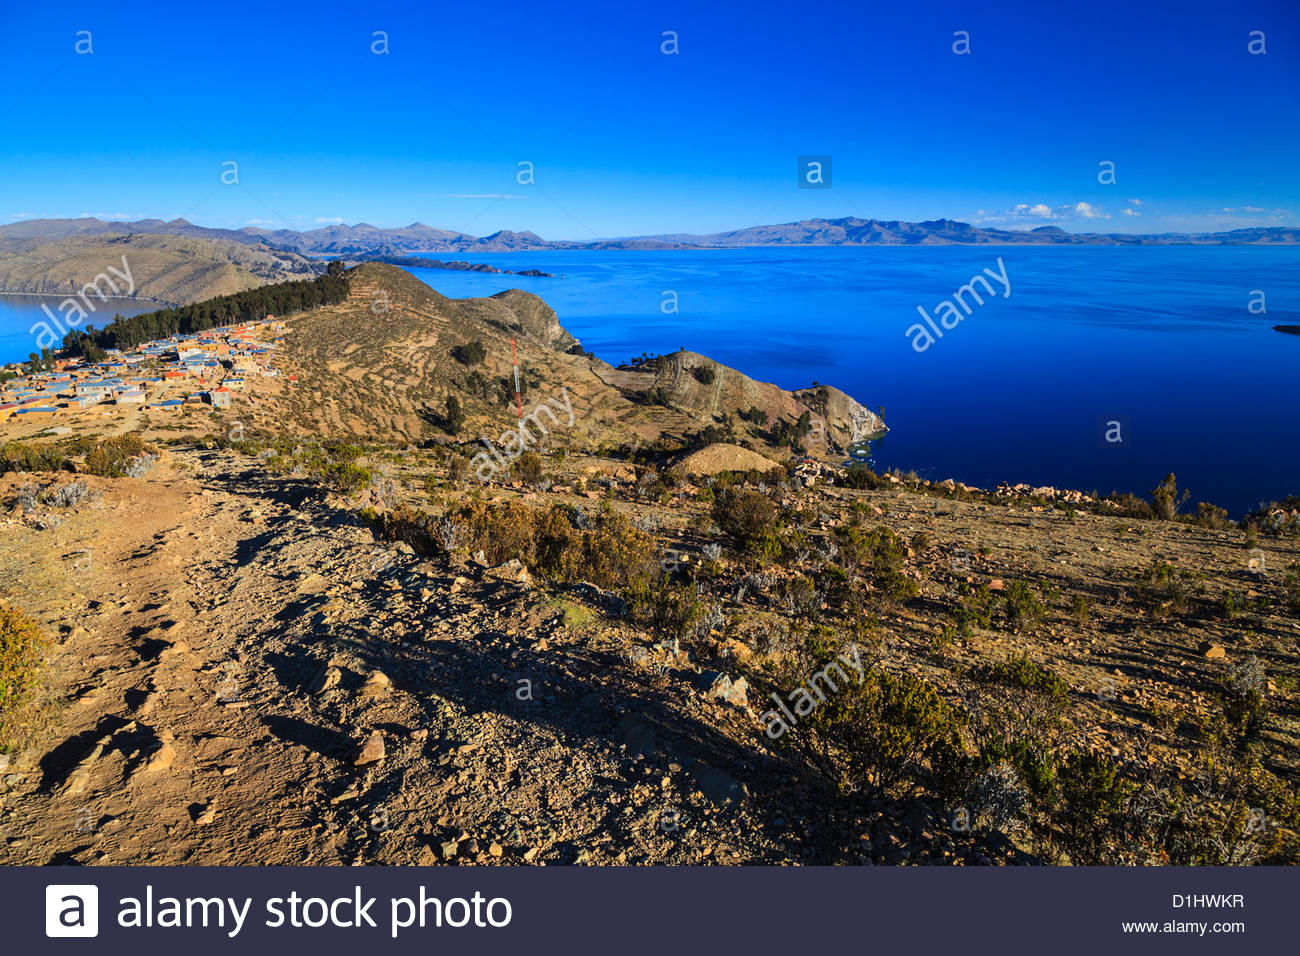 Isla del Sol on the Bolivian Side of Lake Titicaca, Bolivia. - Stock Image